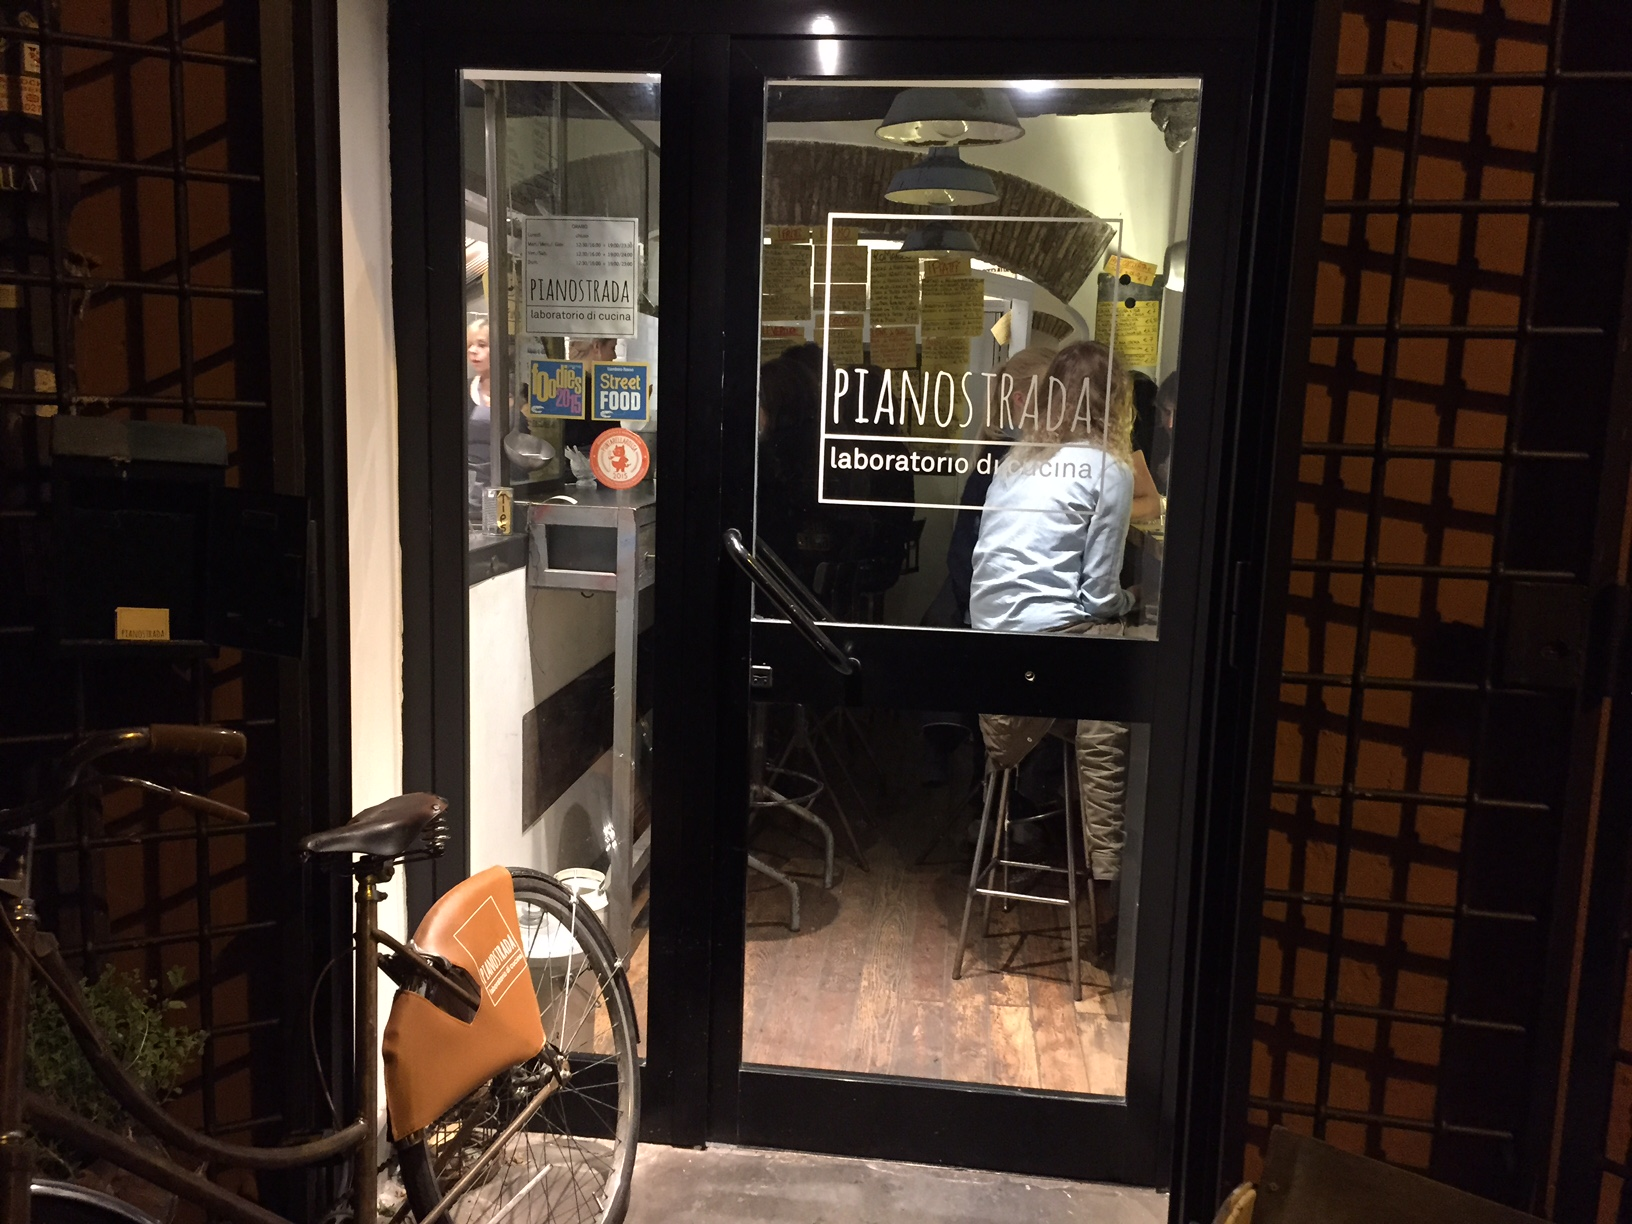 Pianostrada. One of my favorite meals of all time. Period. Look how small this place is. LOOK AT IT. Photo by Max Siskind.